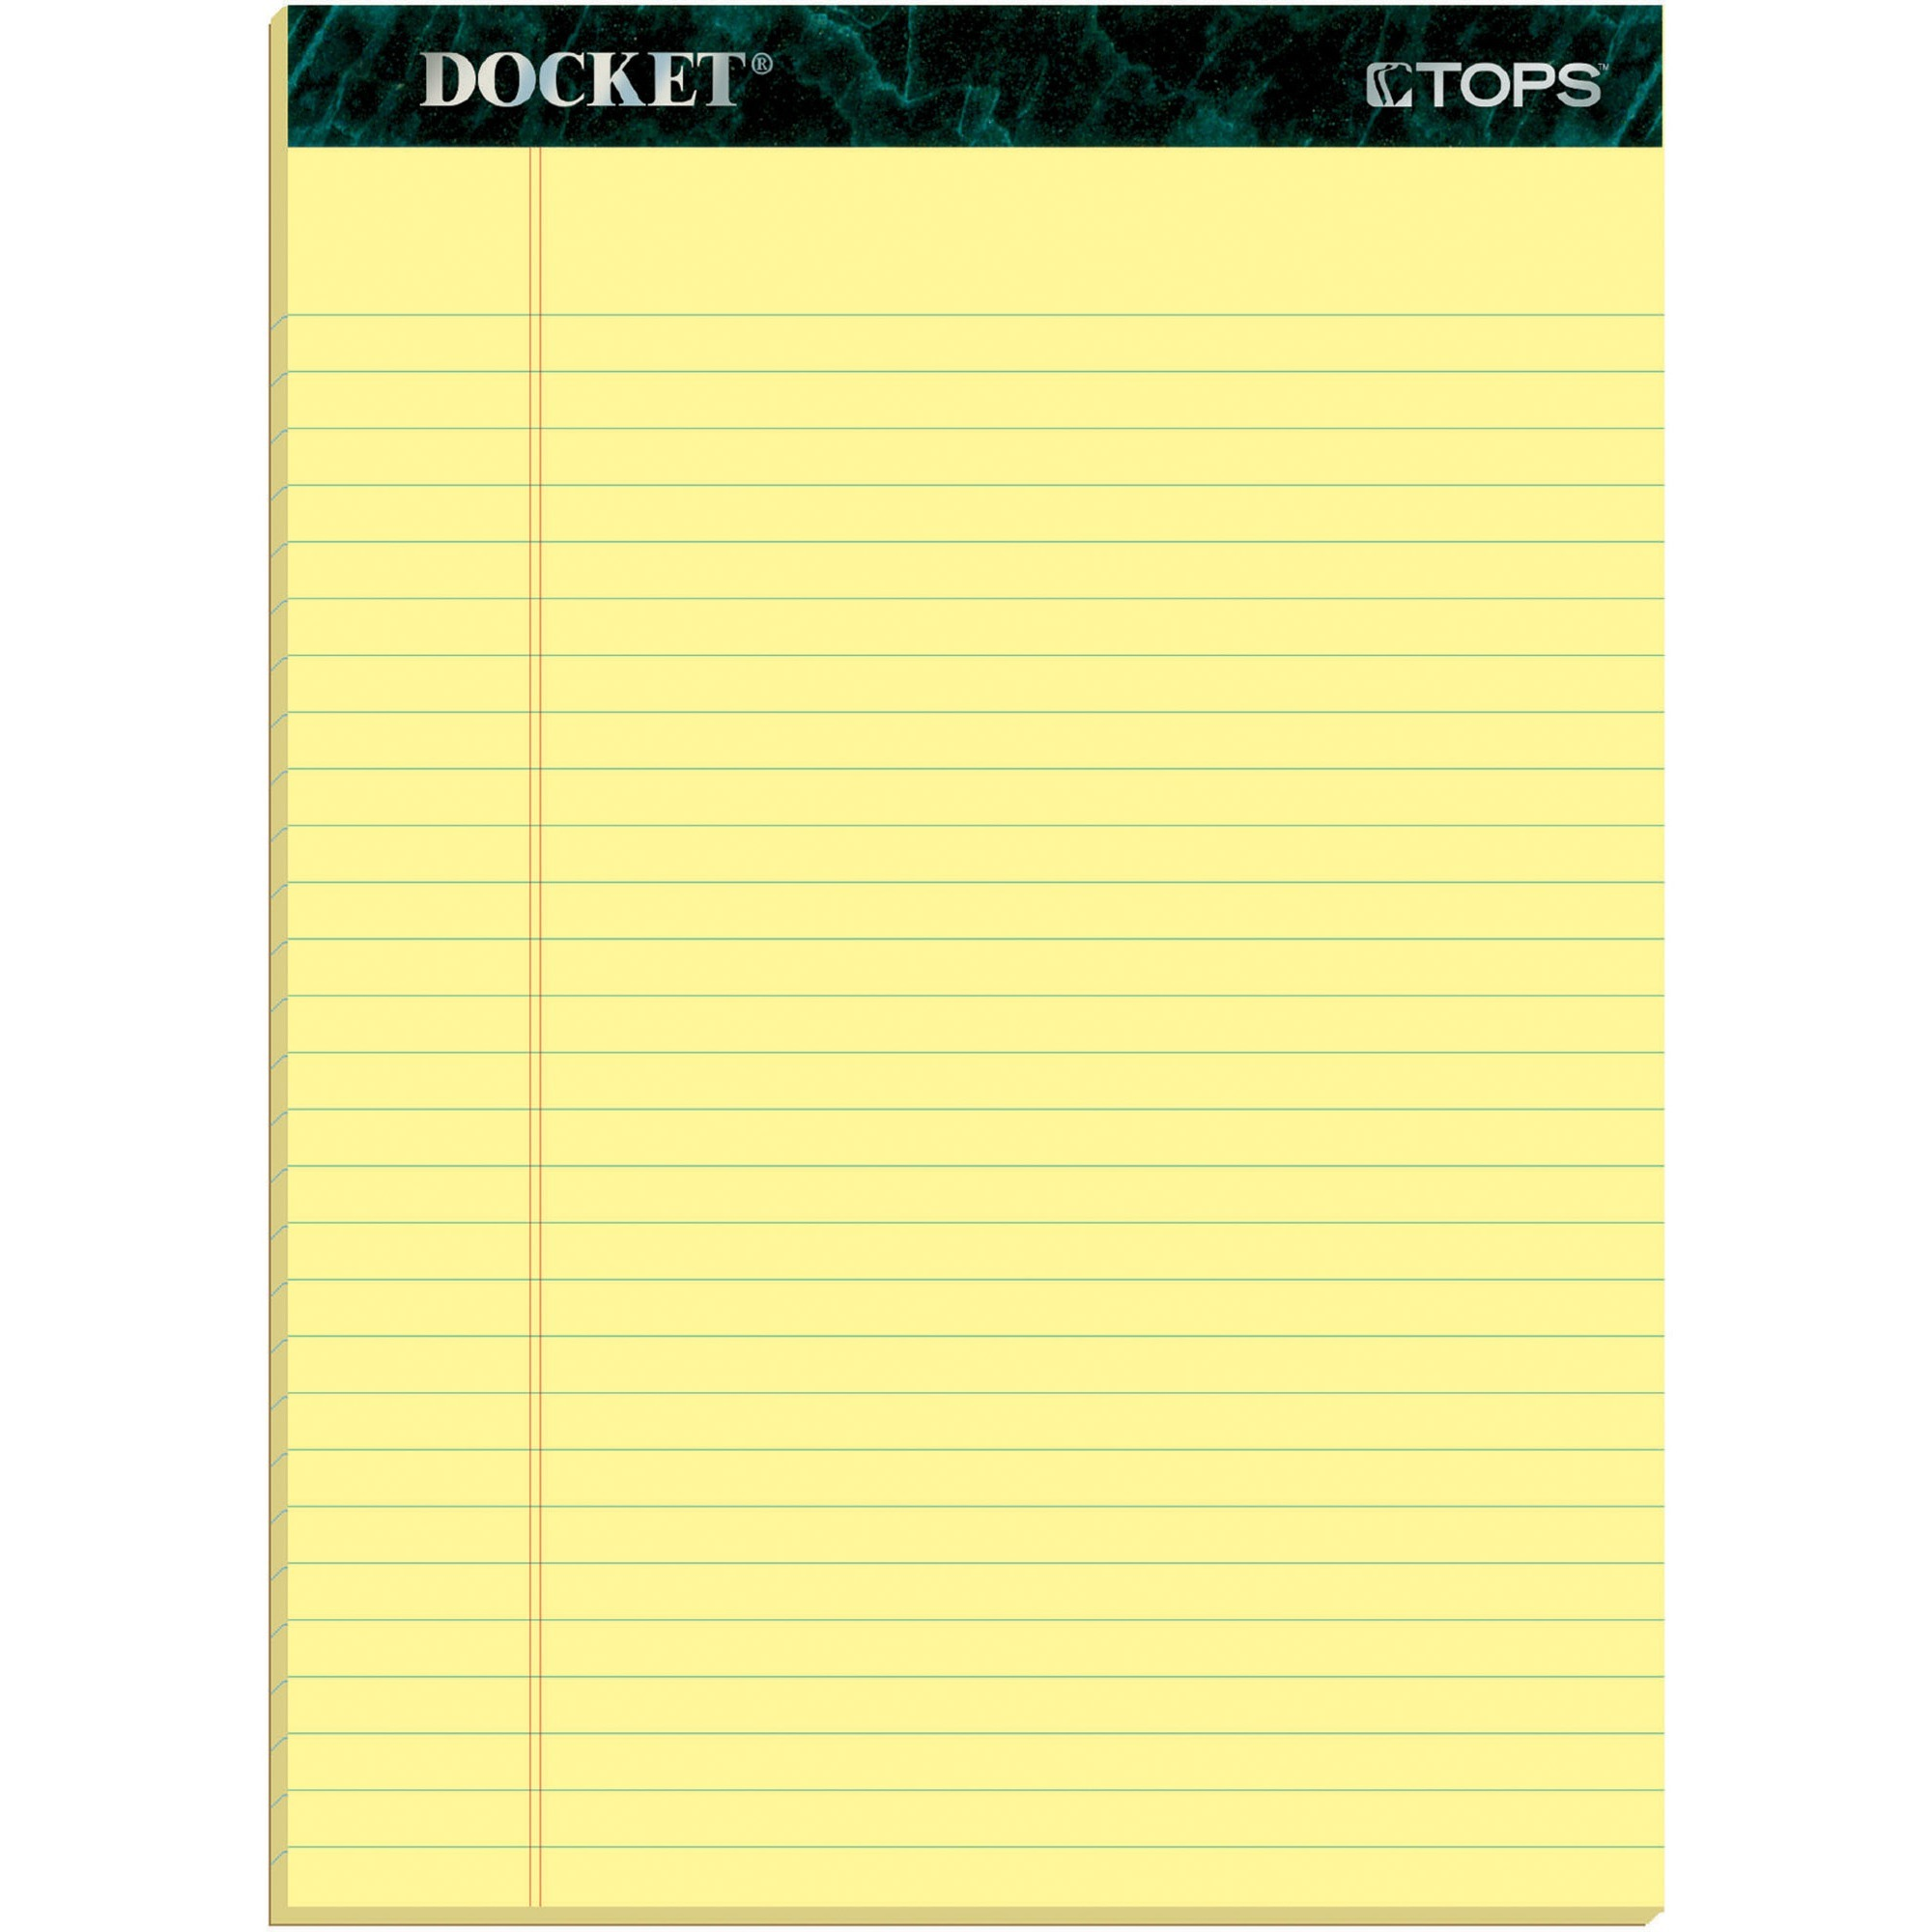 TOPS, TOP63400, Docket Letr-Trim Legal Rule Canary Legal Pads, 12 / Pack